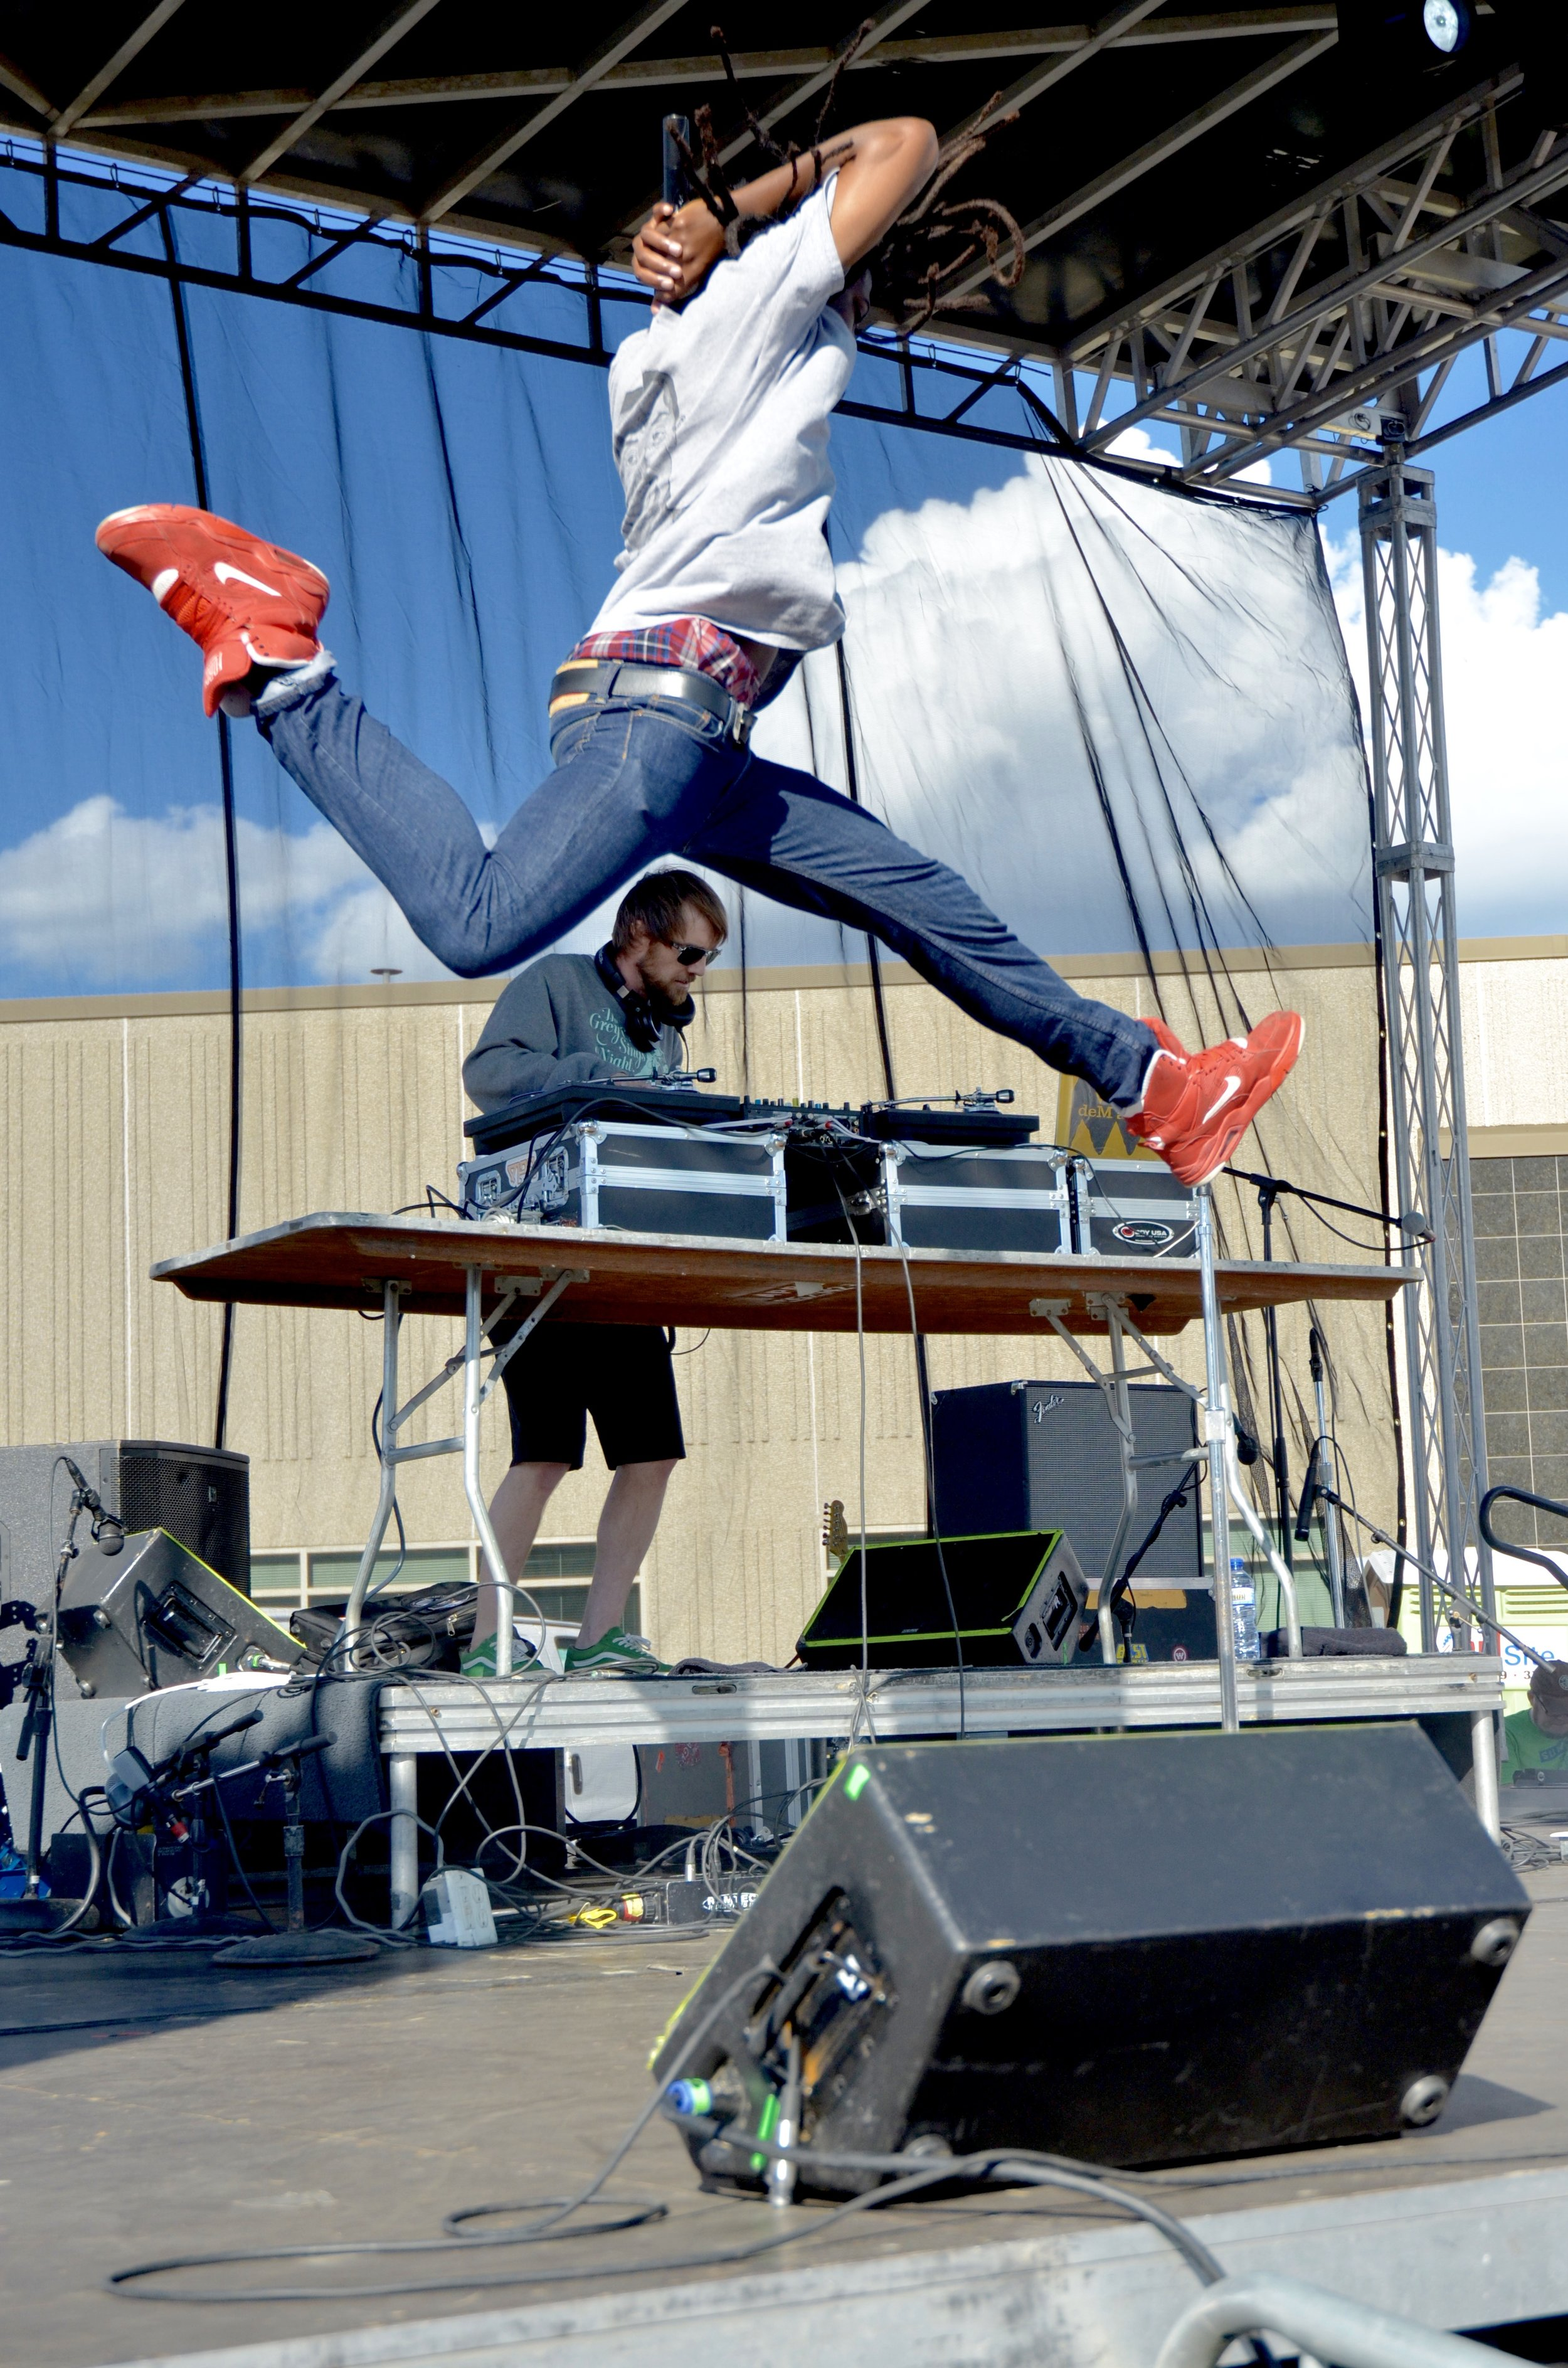 Rapper Dem Atlas defies gravity on stage at the annual Summit Brewing Company Backyard Beer Bash. Find the rest of the photos and story on the  City Pages website here .